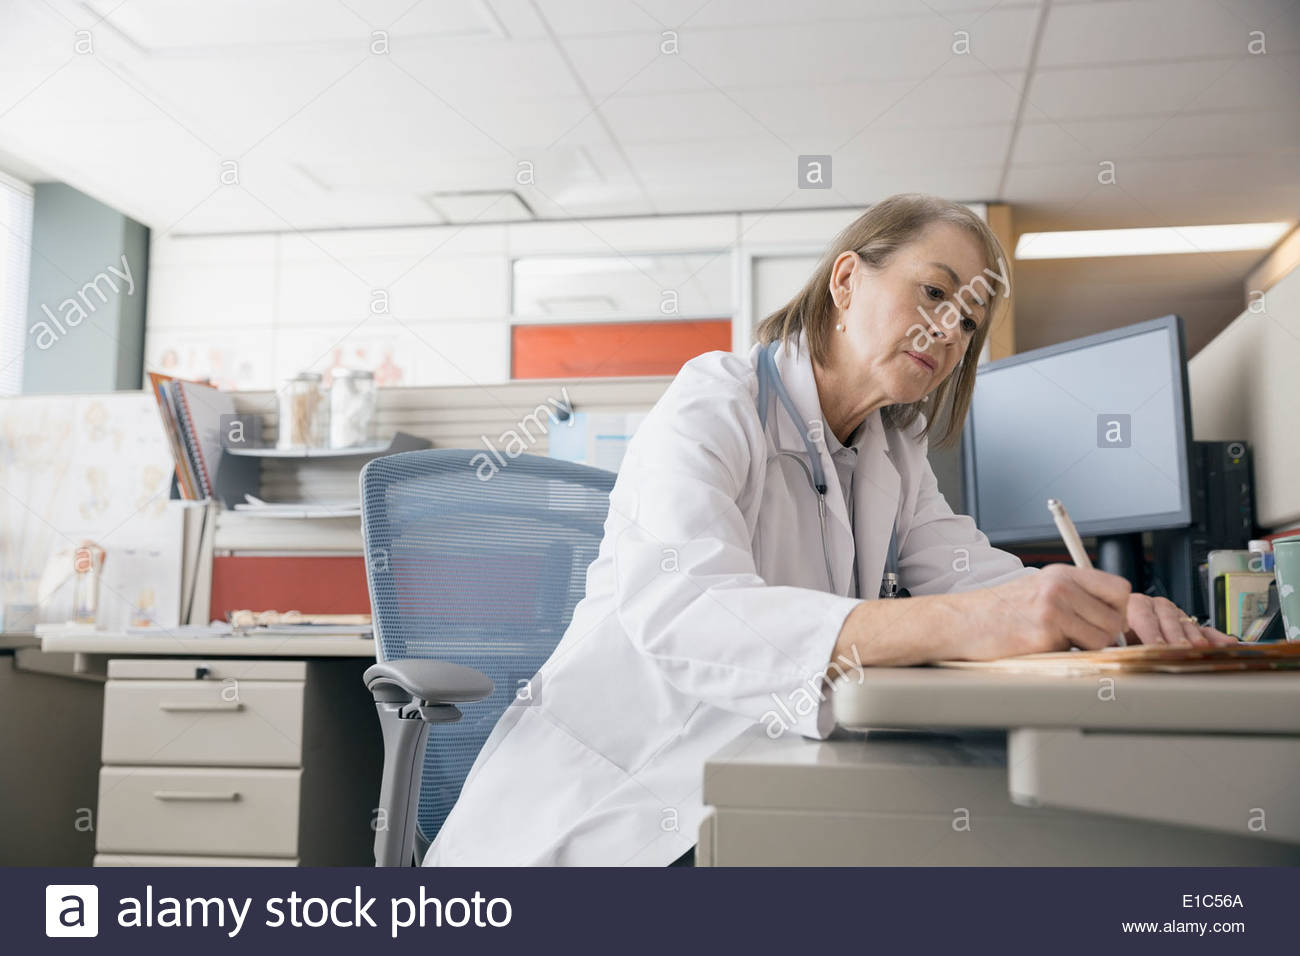 Doctor working at desk - Stock Image